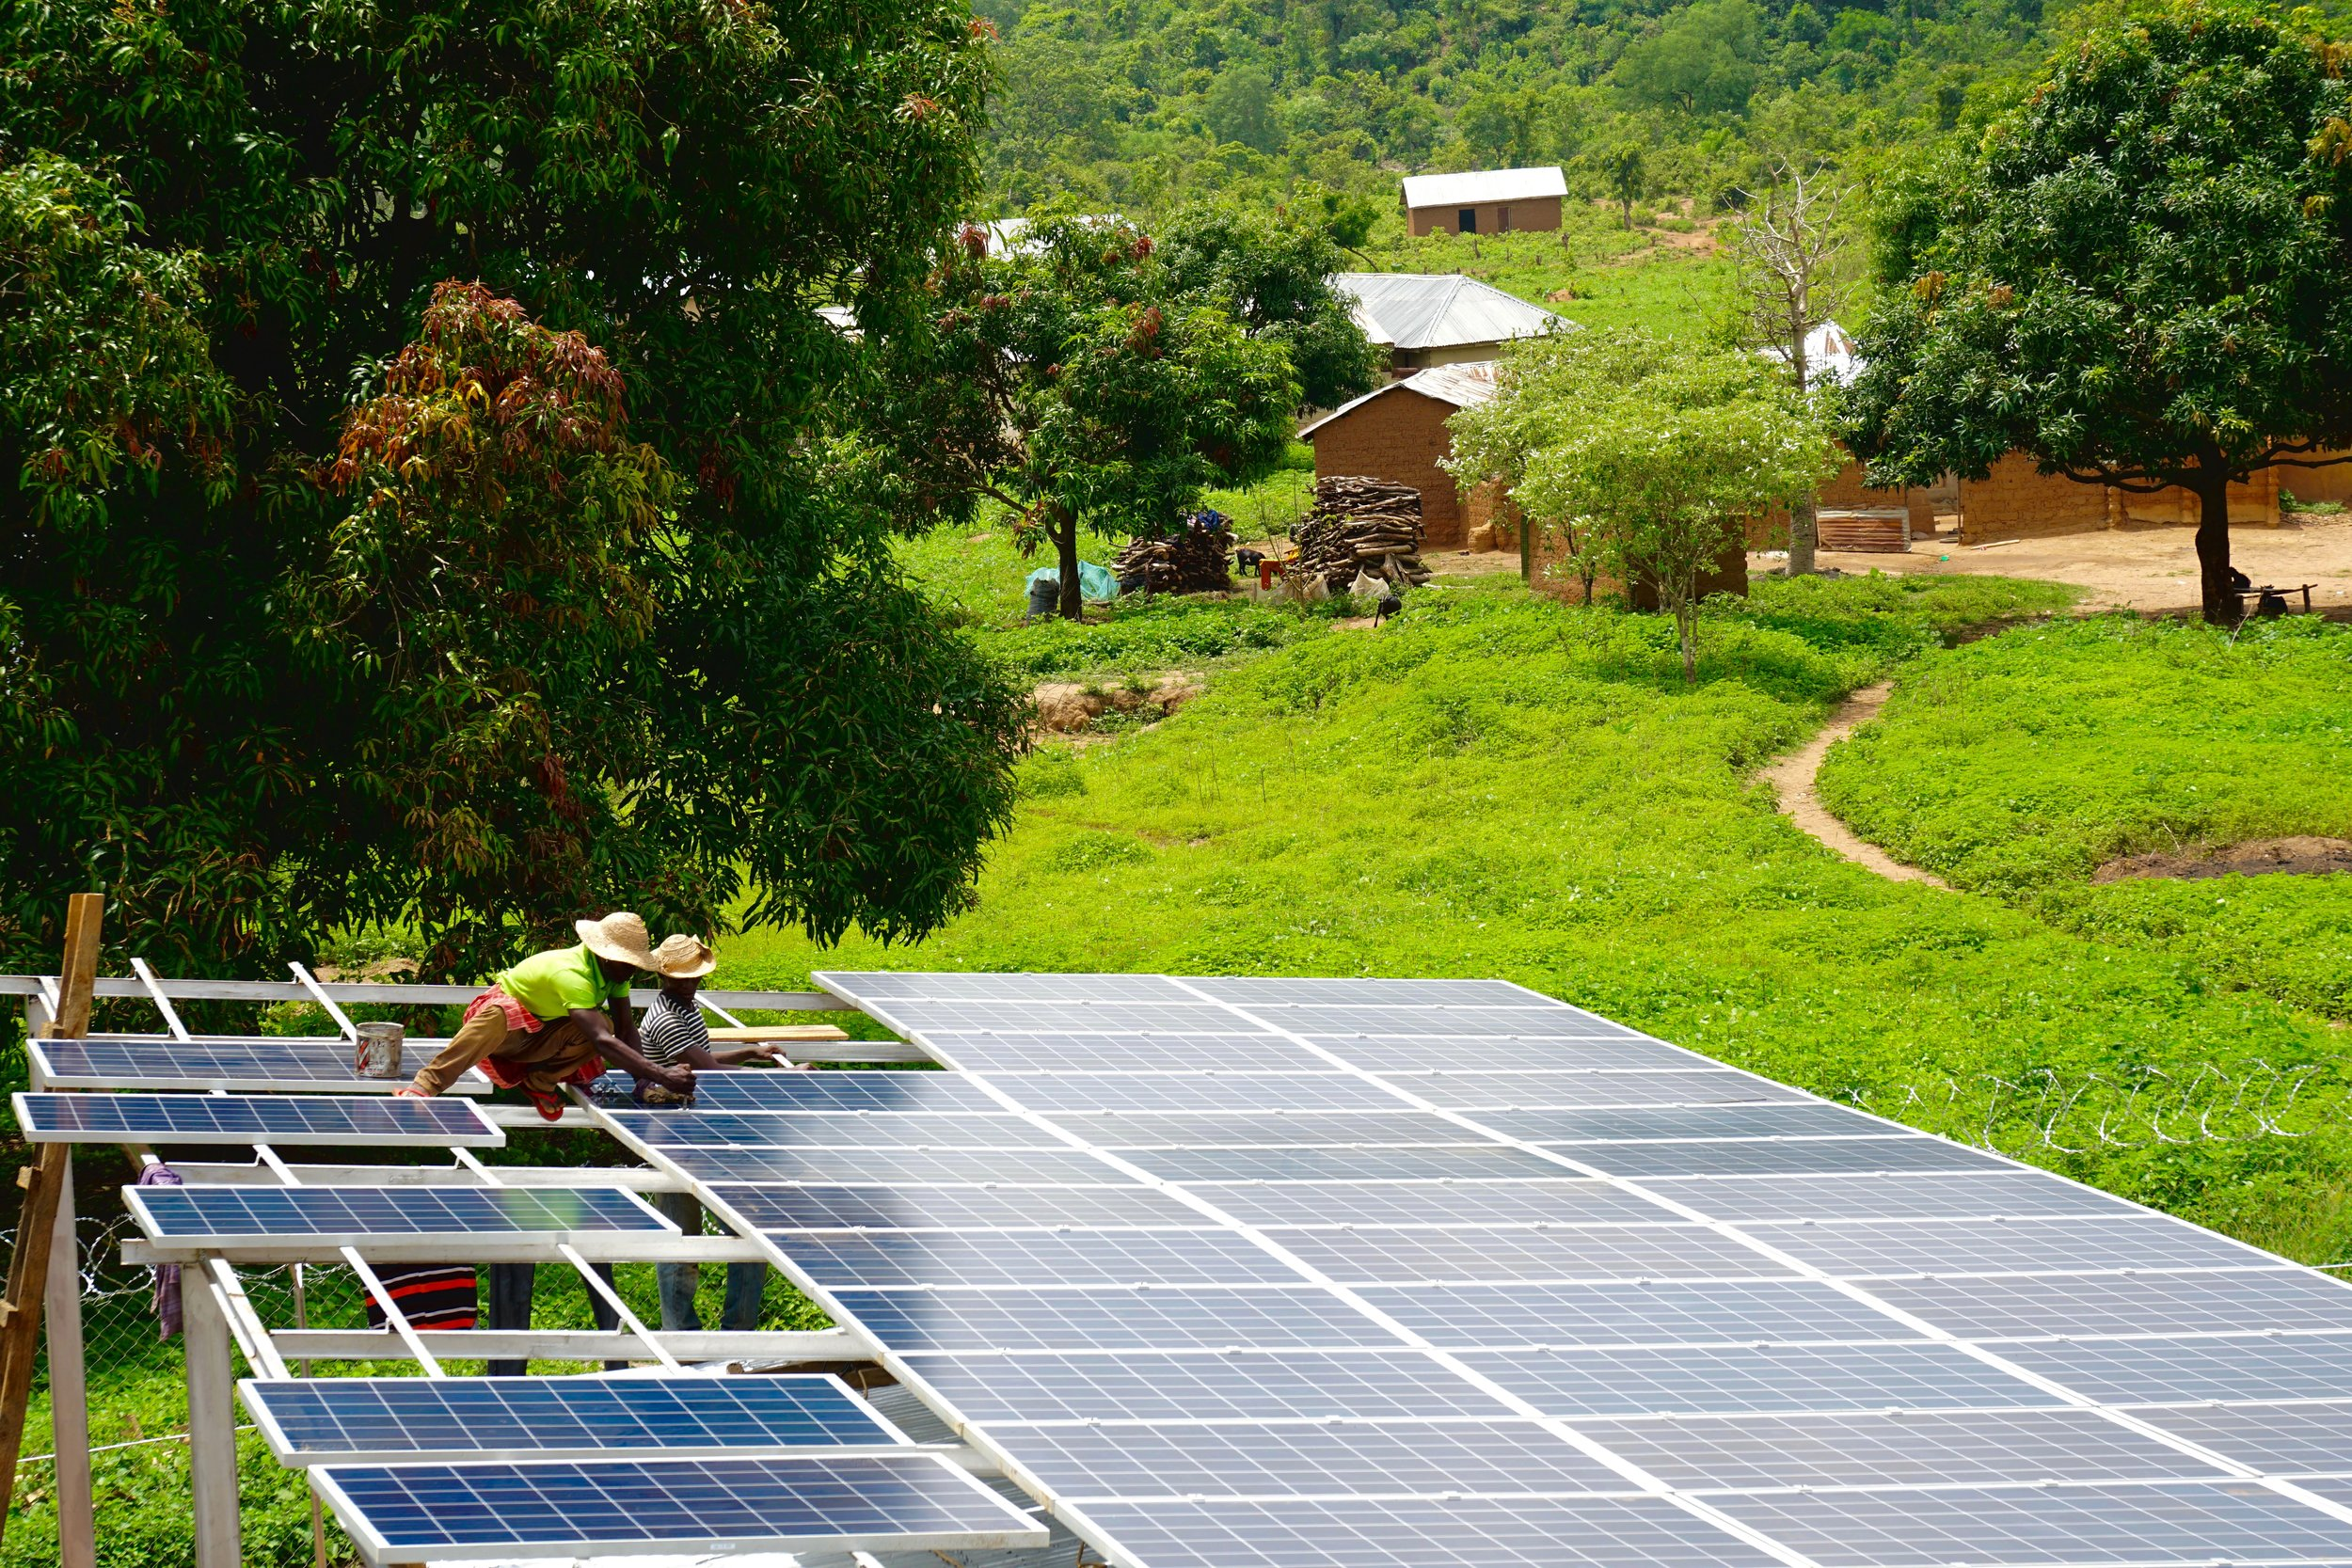 Over 95 million Nigerians lack access to electricity. USADF and All On recently announced a public-private partnership to support local enterprises bringing off grid energy solutions to underserved communities in Nigeria.